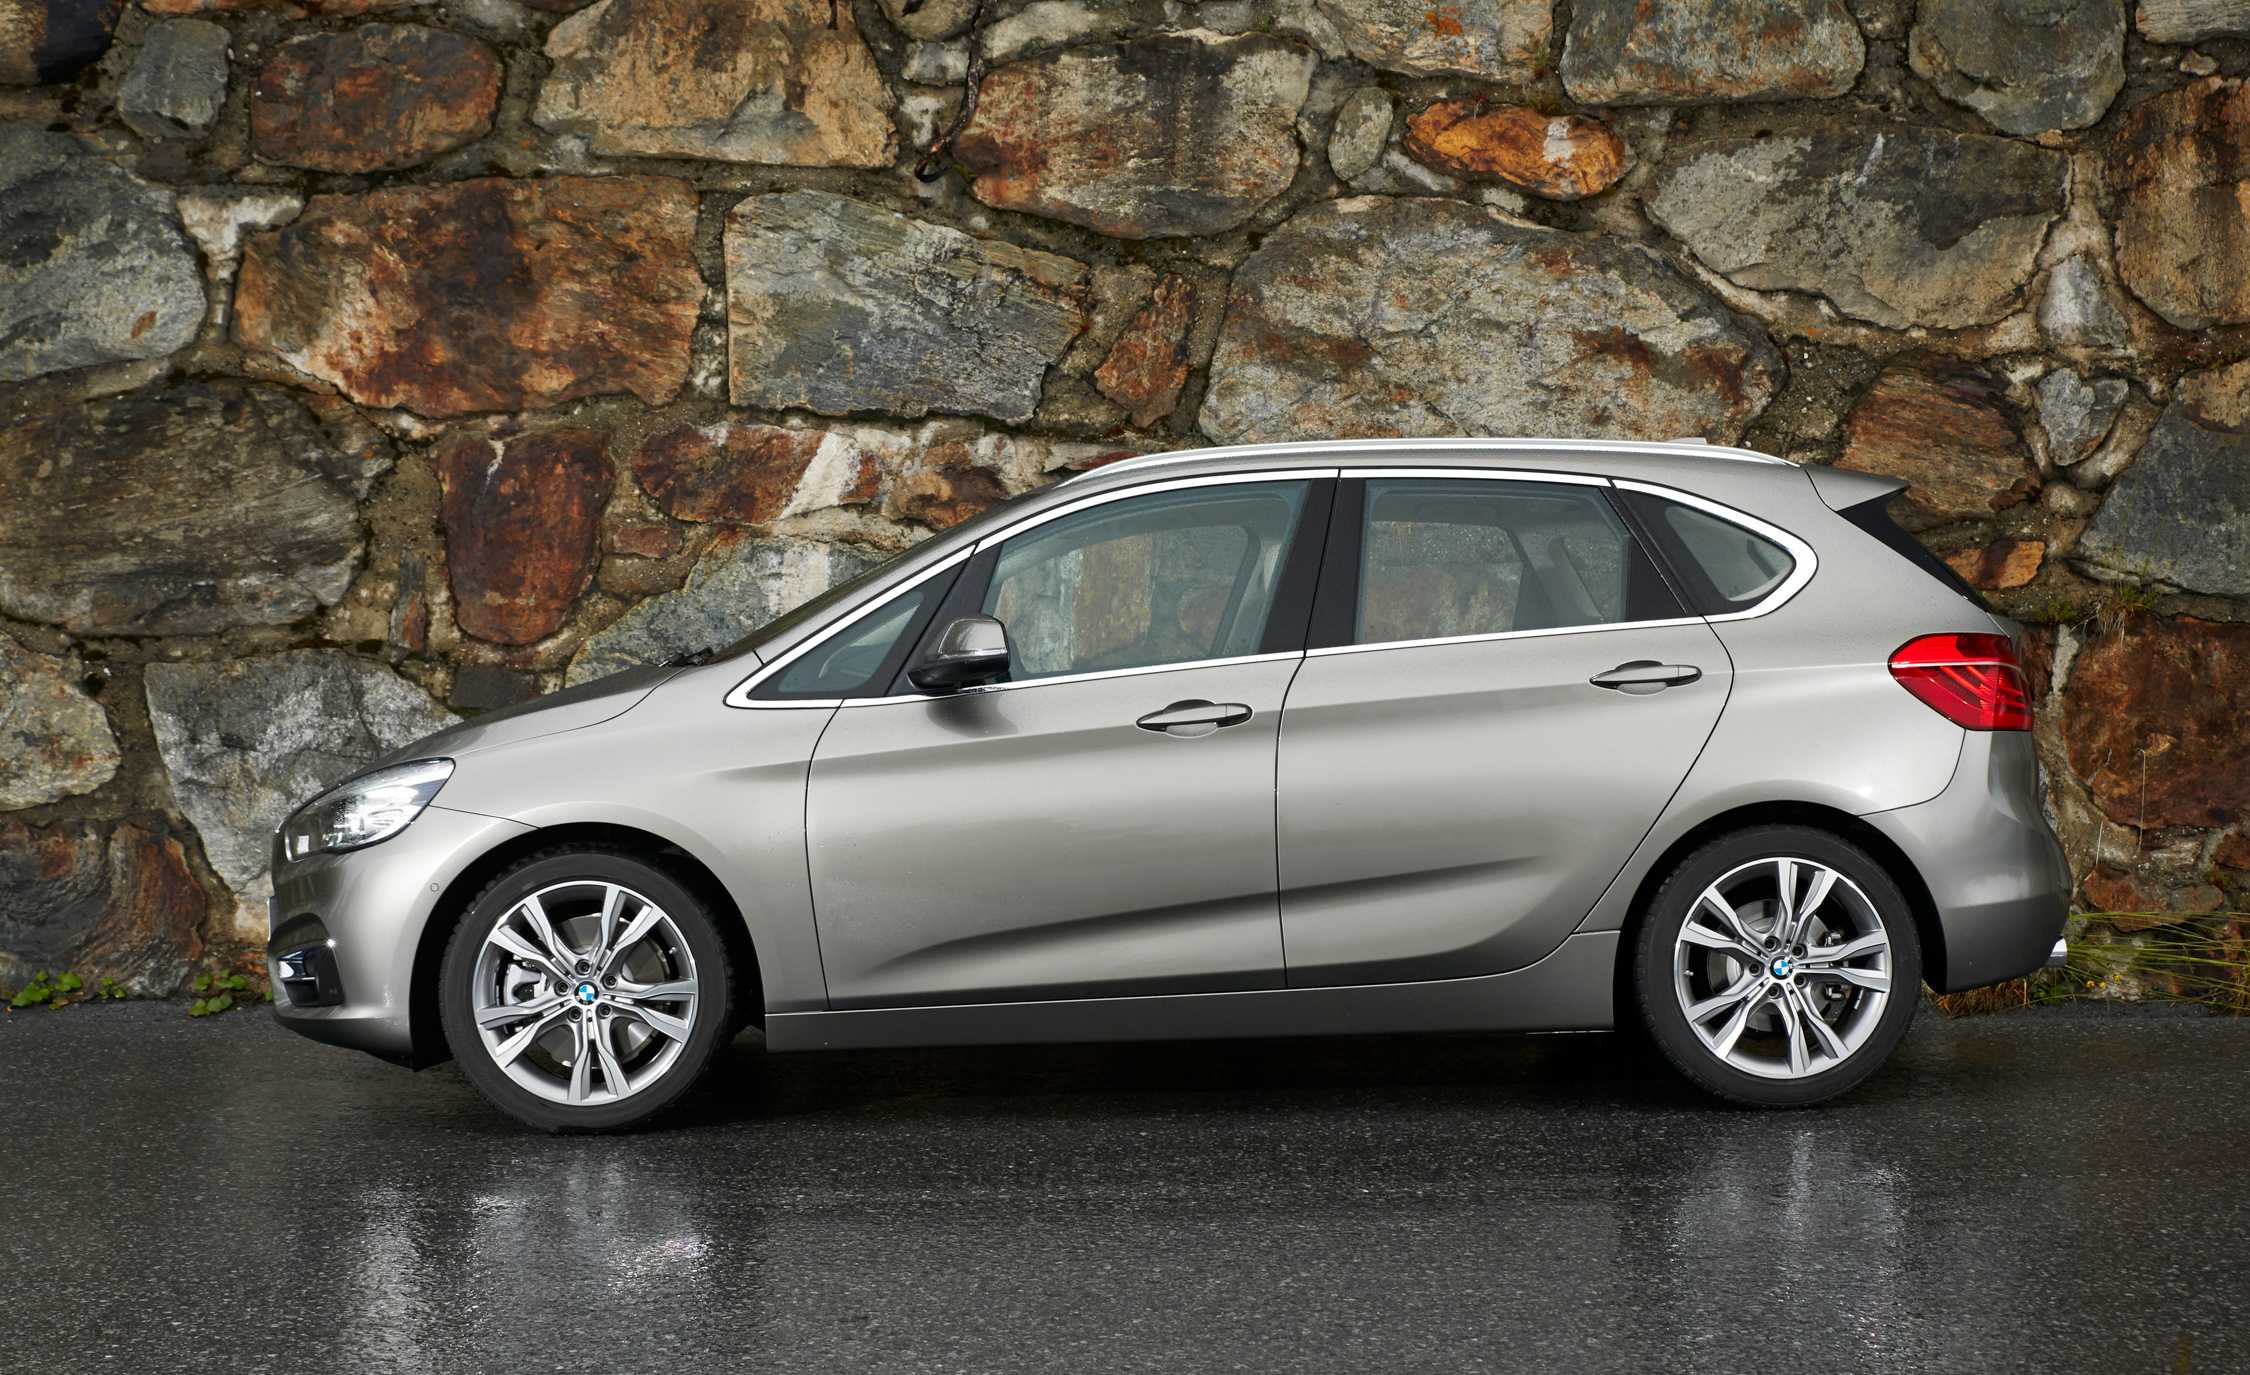 2015 BMW 225i Active Tourer (Euro Spec) (Photo 6 of 14)